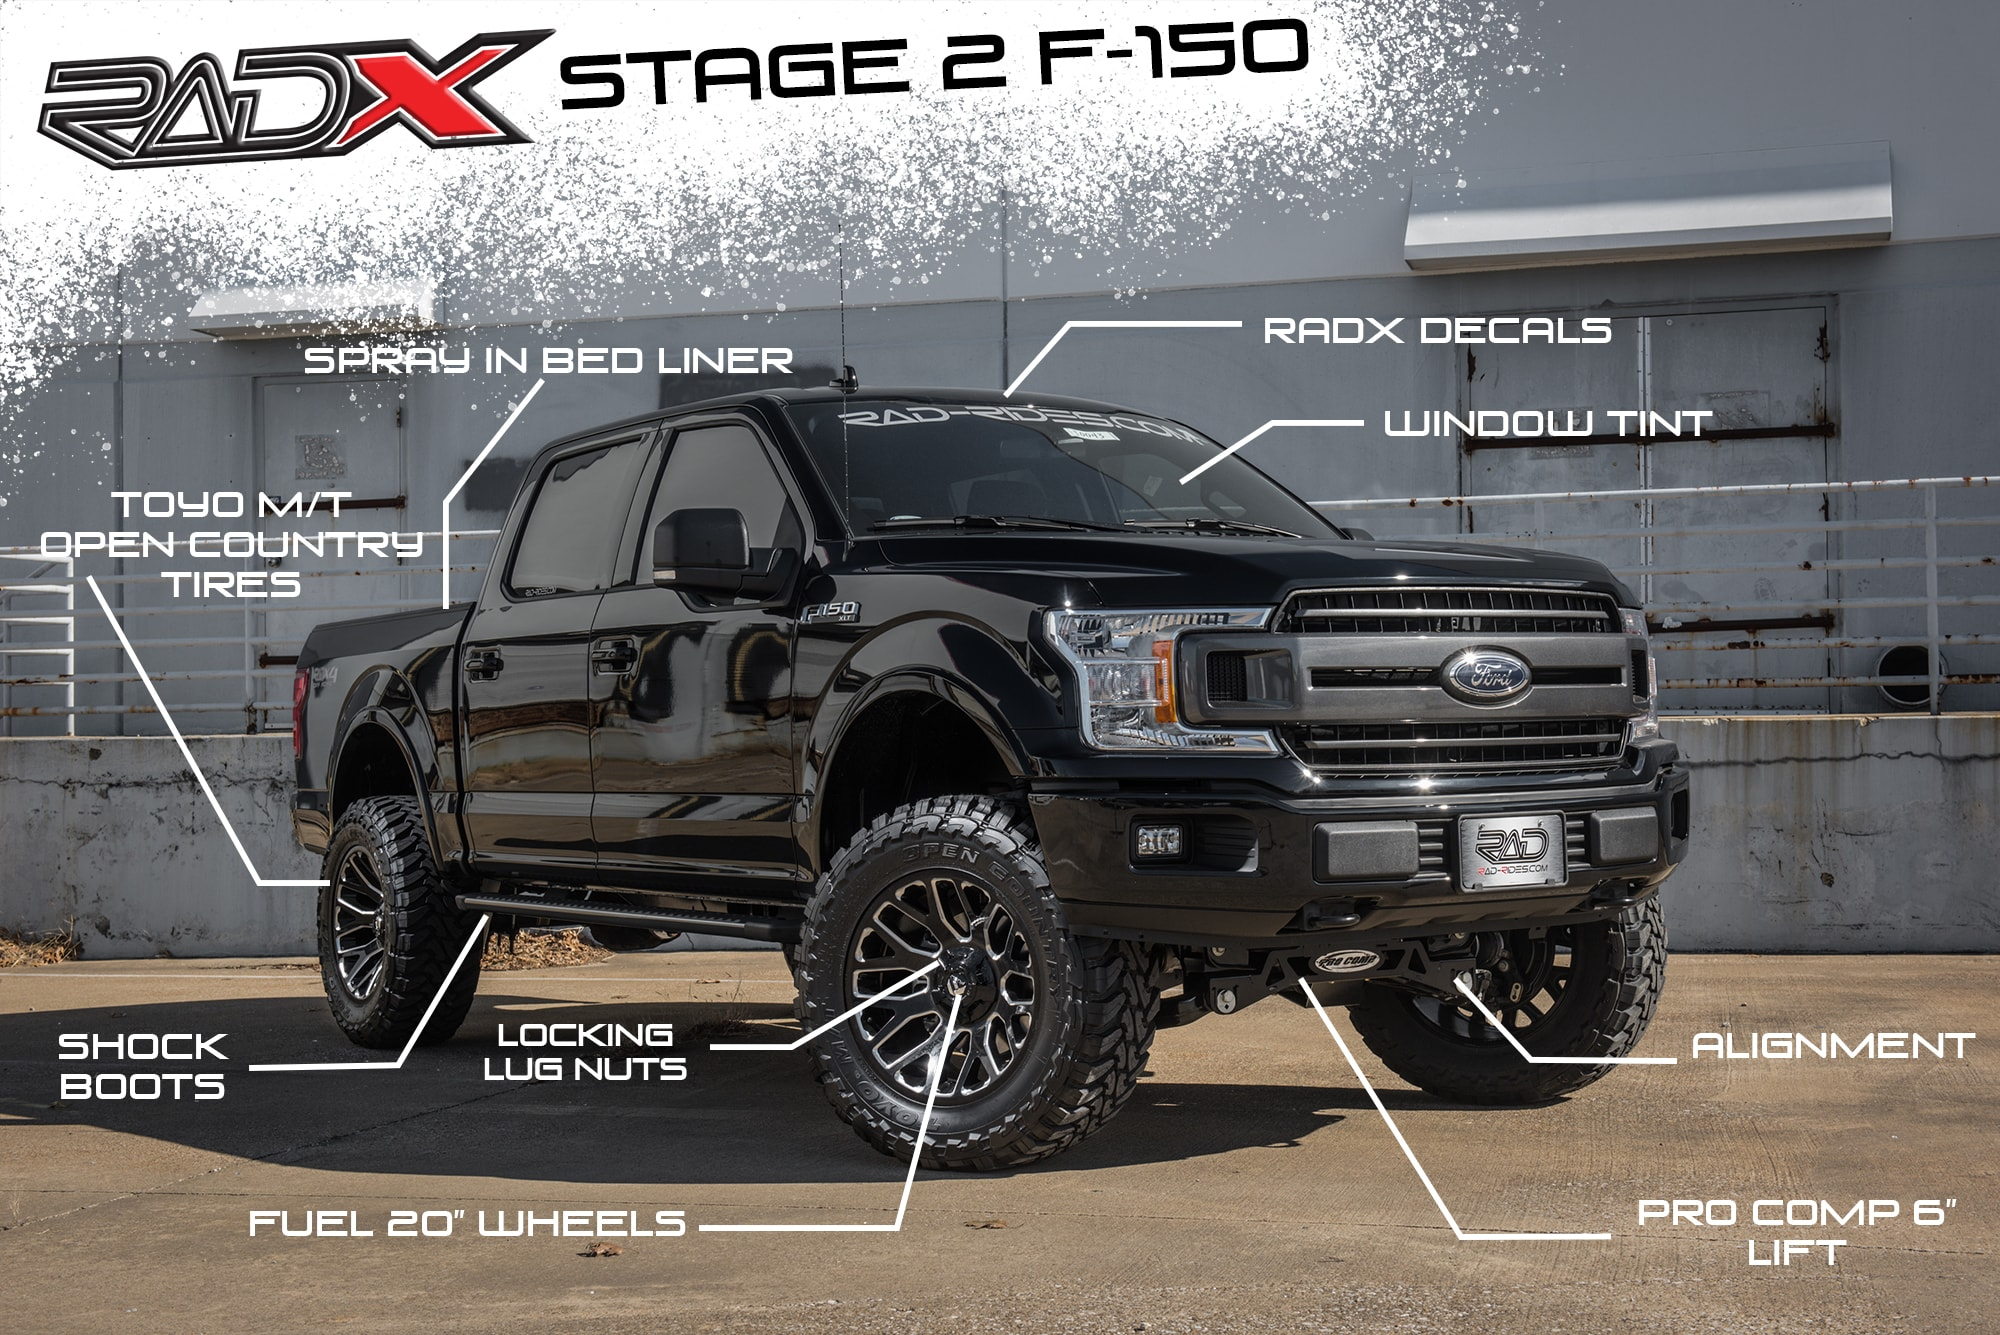 Rad Truck Packages For 4x4 And 2wd Trucks Lift Kits And Wheels And